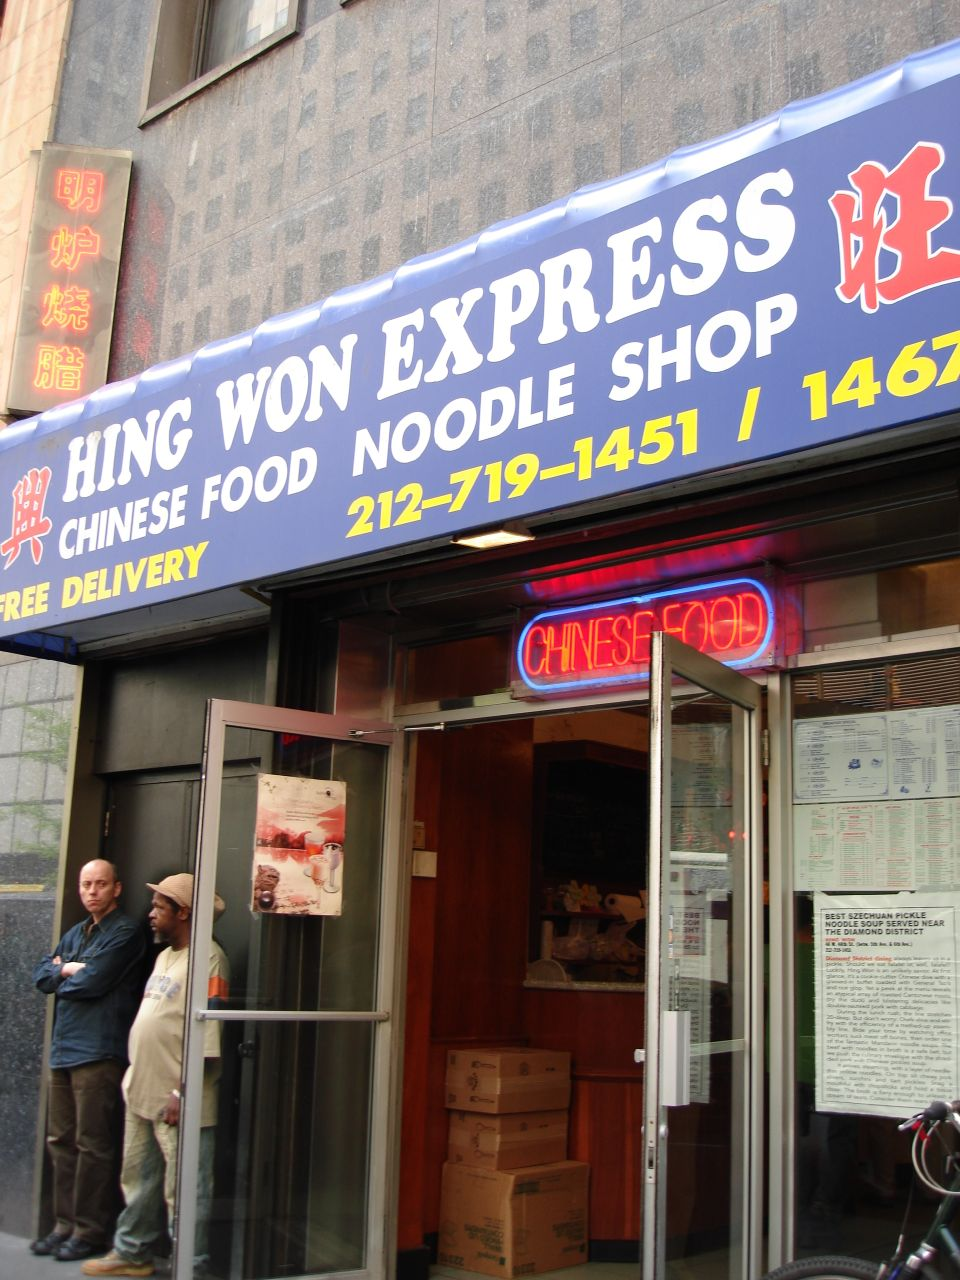 Chinese Food West Nd Street Nyc